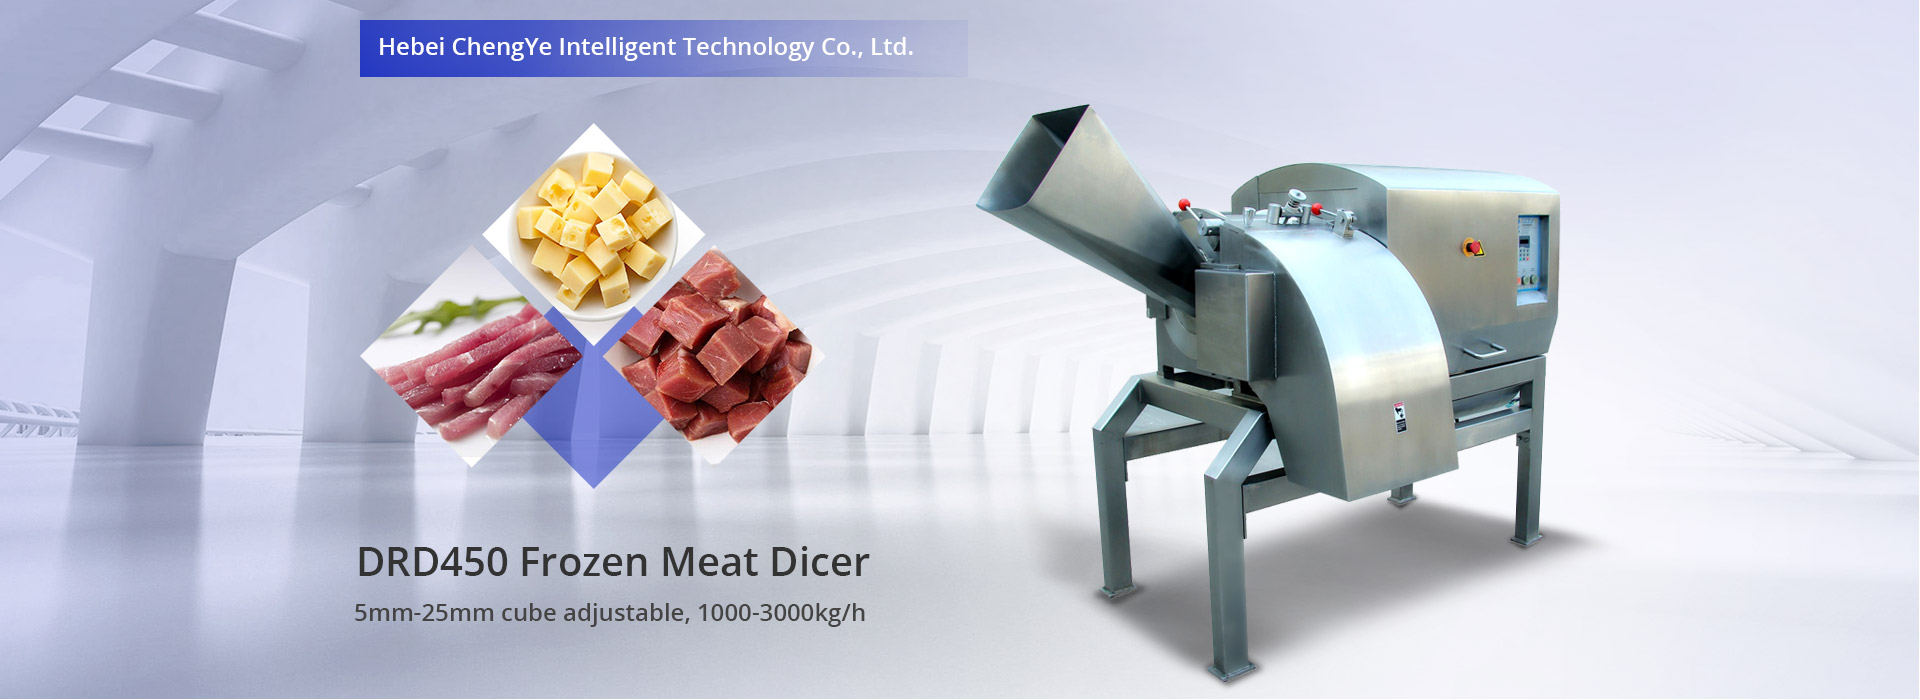 DRD450 Frozen Meat Dicer